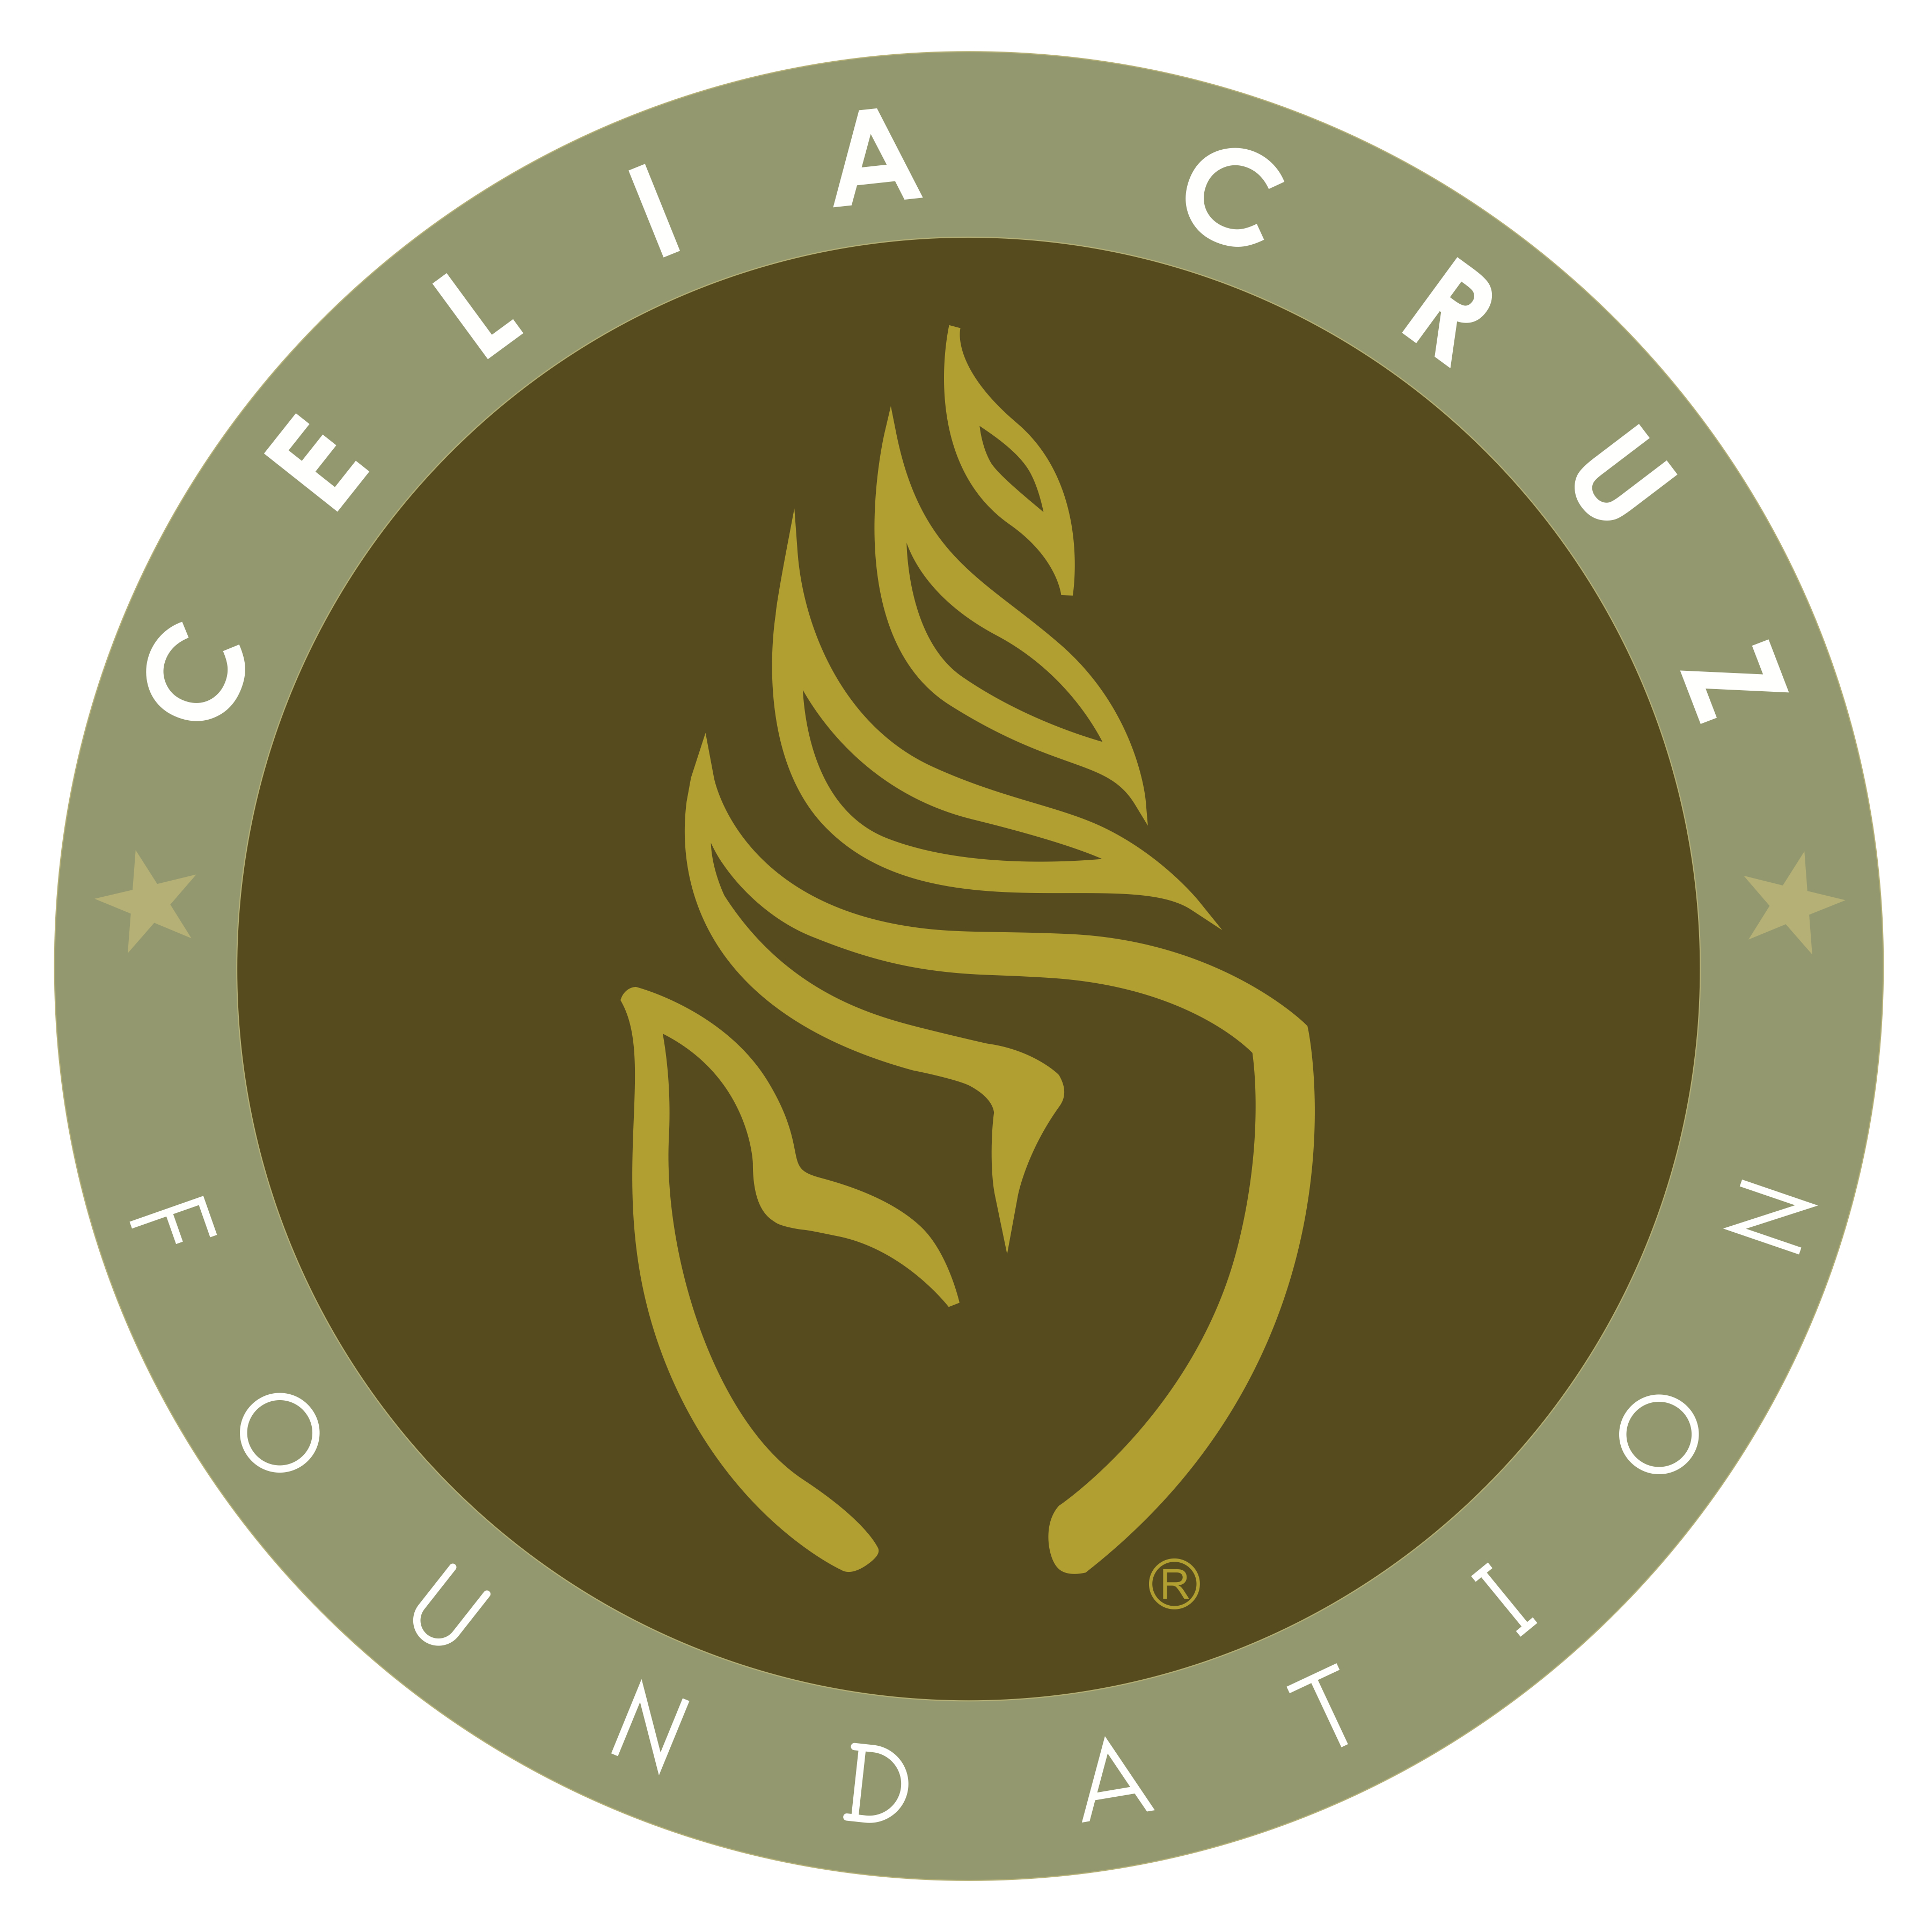 Celia Cruz Foundation Celia Cruz Foundation""